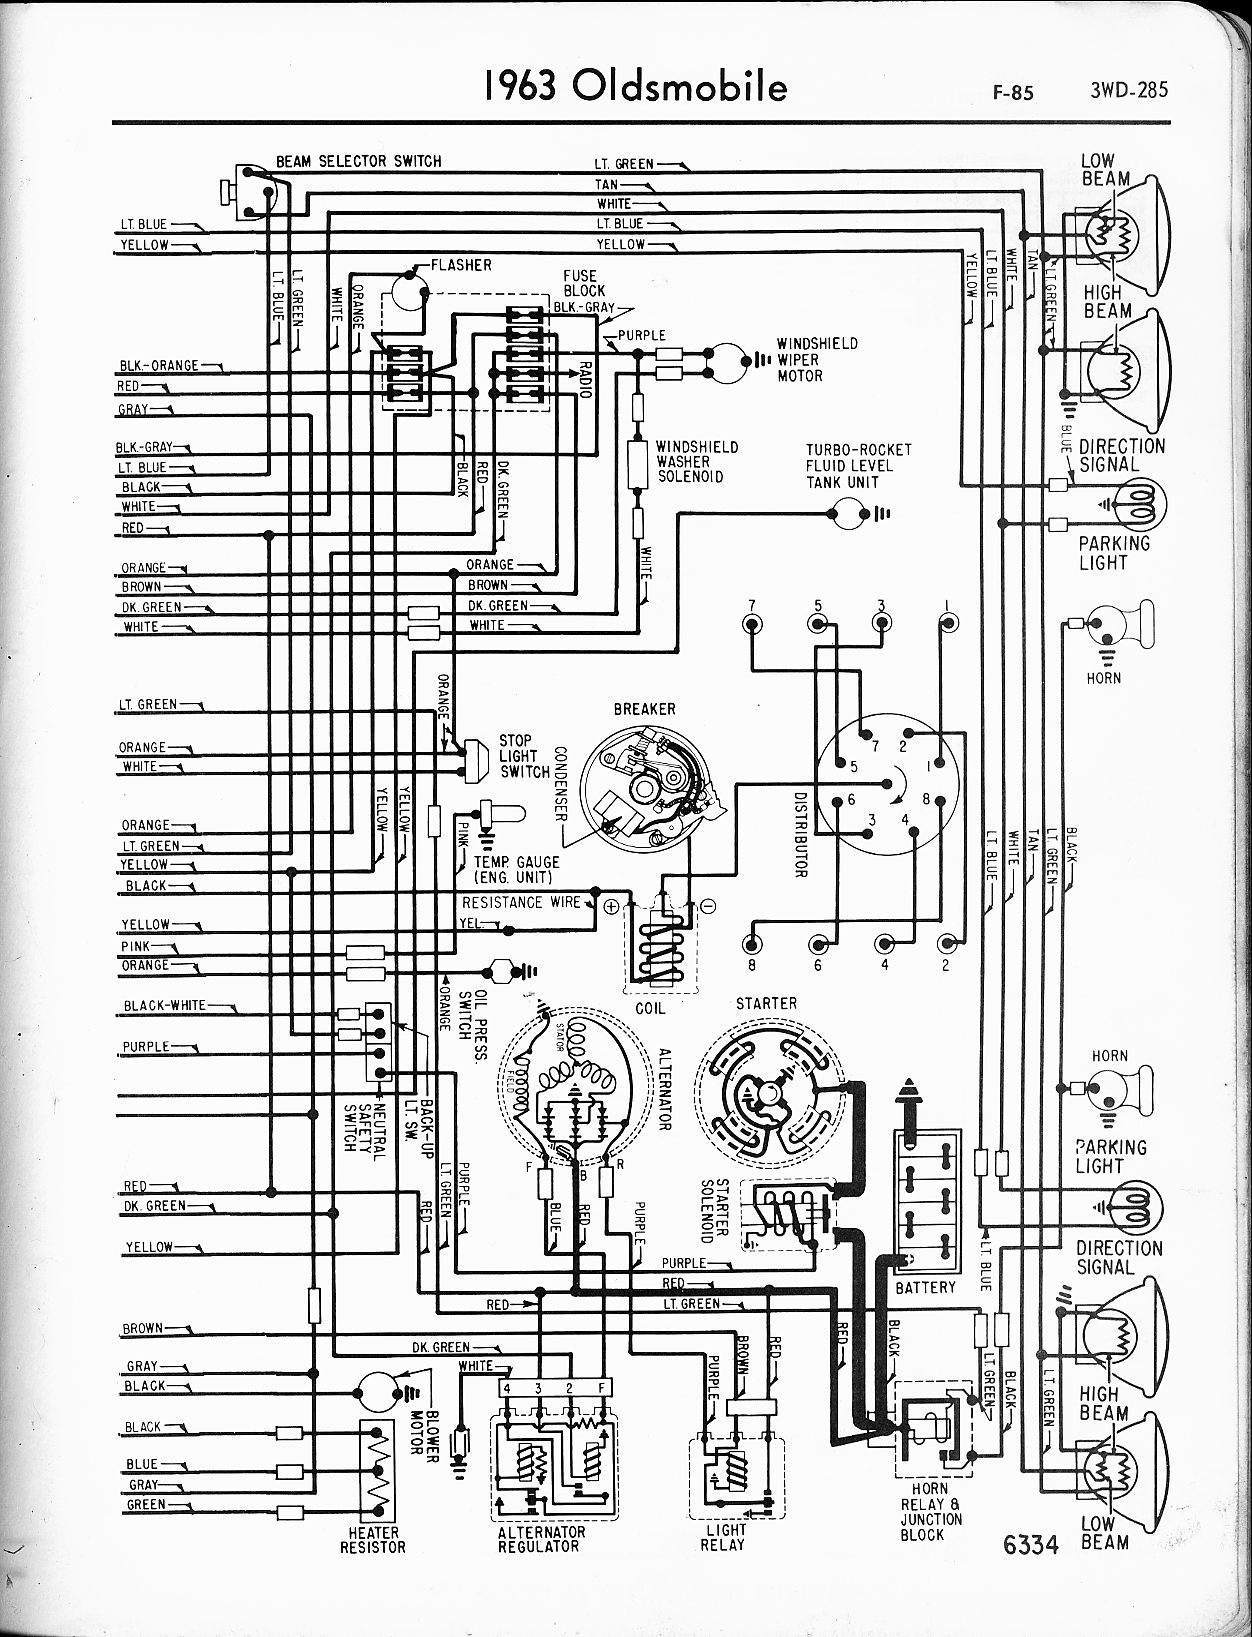 1998 Olds Ignition Switch Diagram - ~ Wiring Diagram Portal ~ •